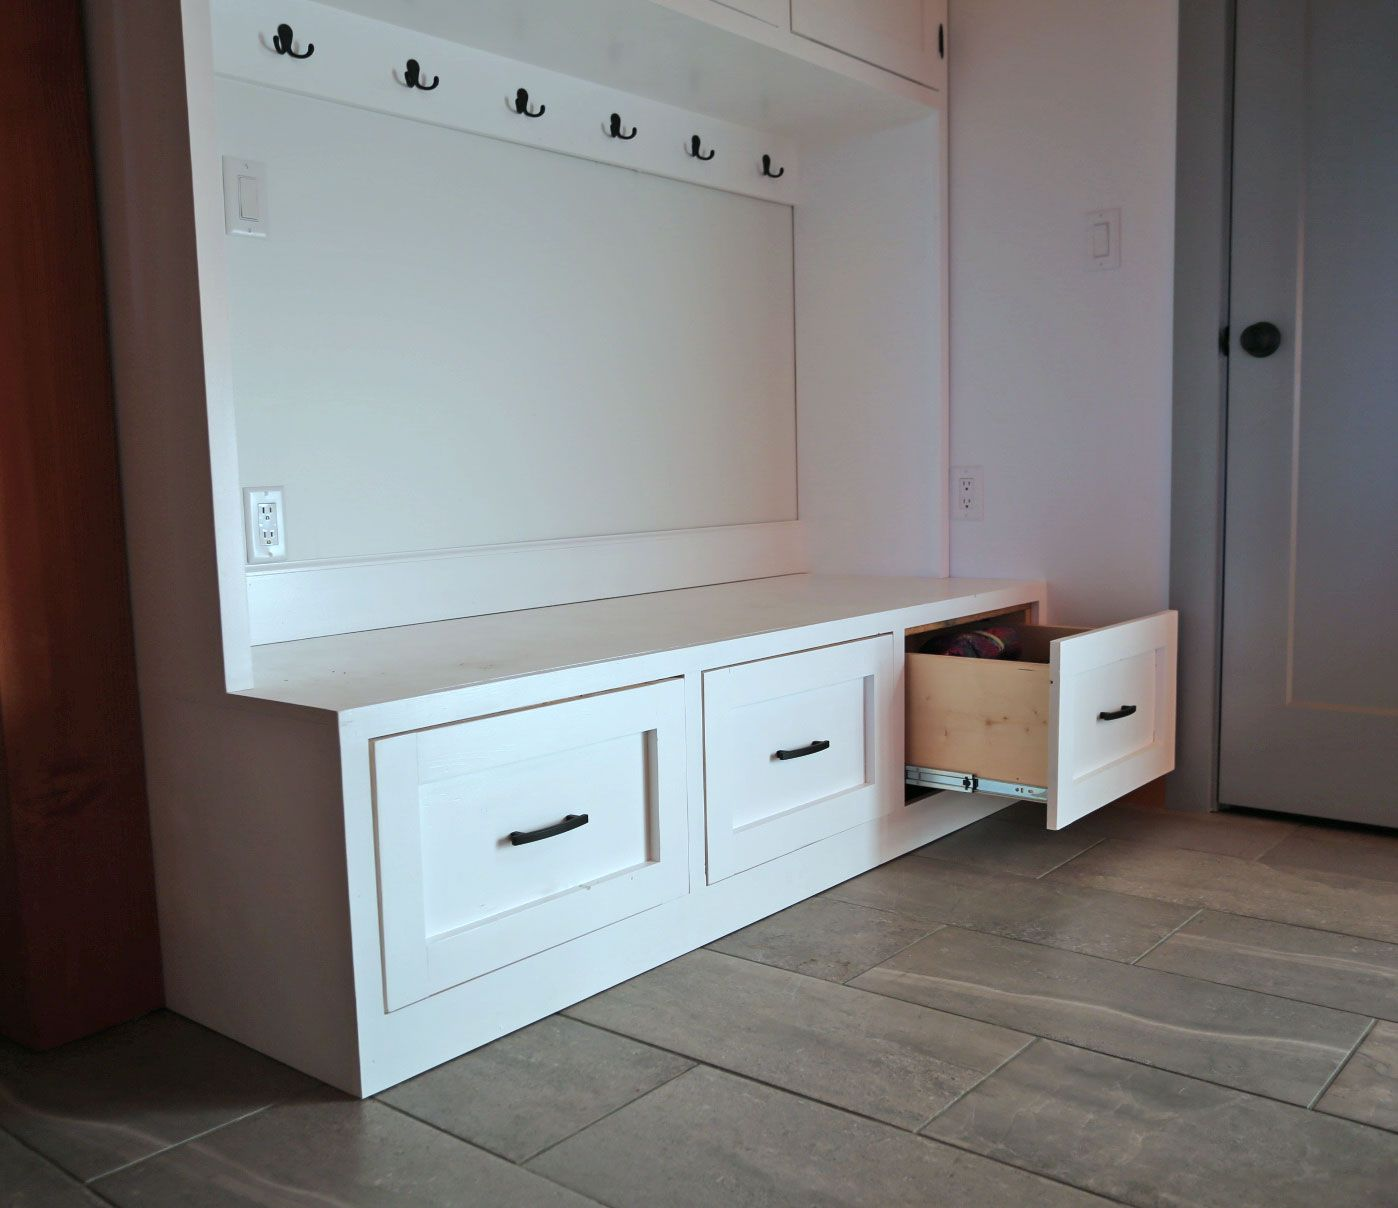 Astounding Mudroom Bench With Easy Drawers Laundry Room Diy Storage Inzonedesignstudio Interior Chair Design Inzonedesignstudiocom